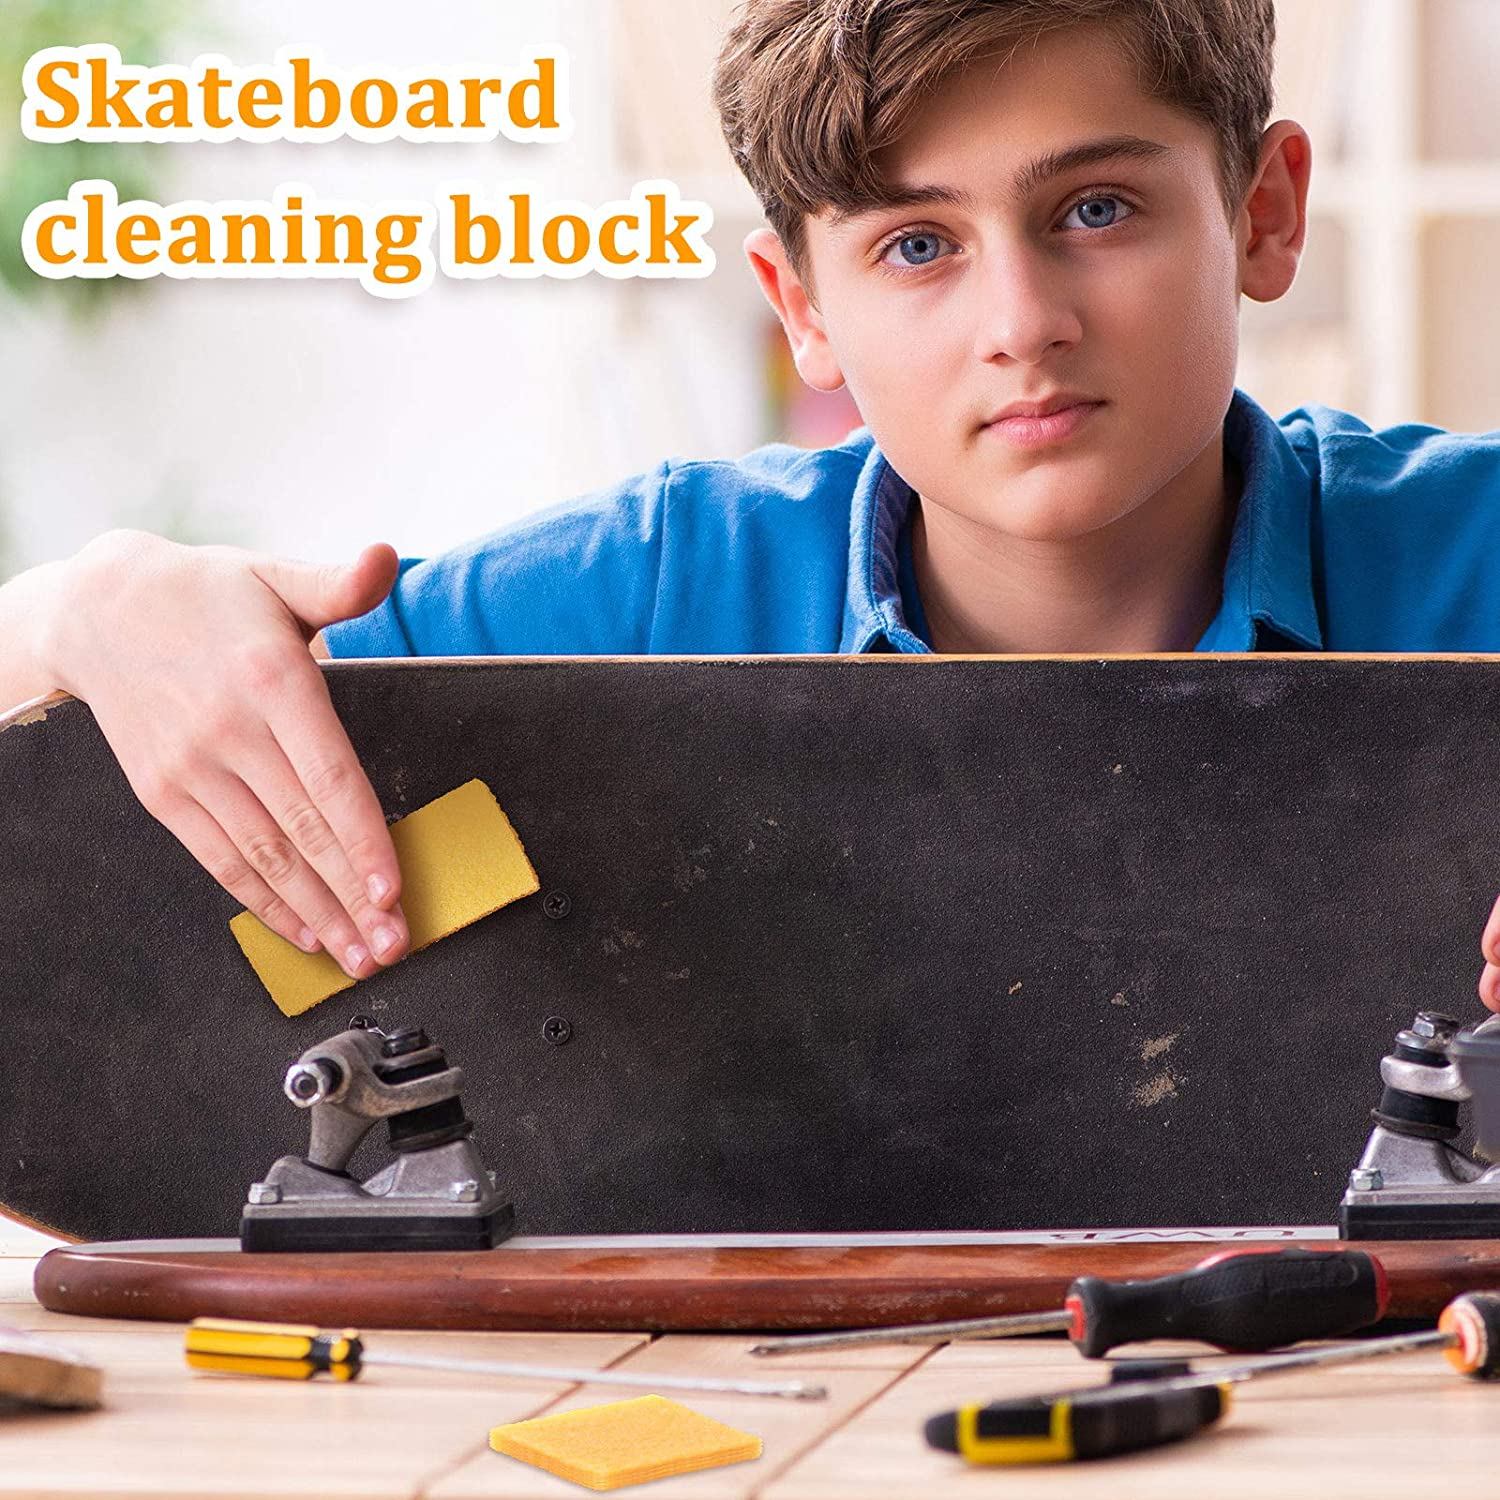 Skateboard Shoes and Sanding Discs Scooter Rough Tape 6 Pieces Abrasive Cleaning Stick Skateboard Cleaner Rubber Skateboard Sander Cleaning Block Wipe Eraser for Cleaning Sandpaper